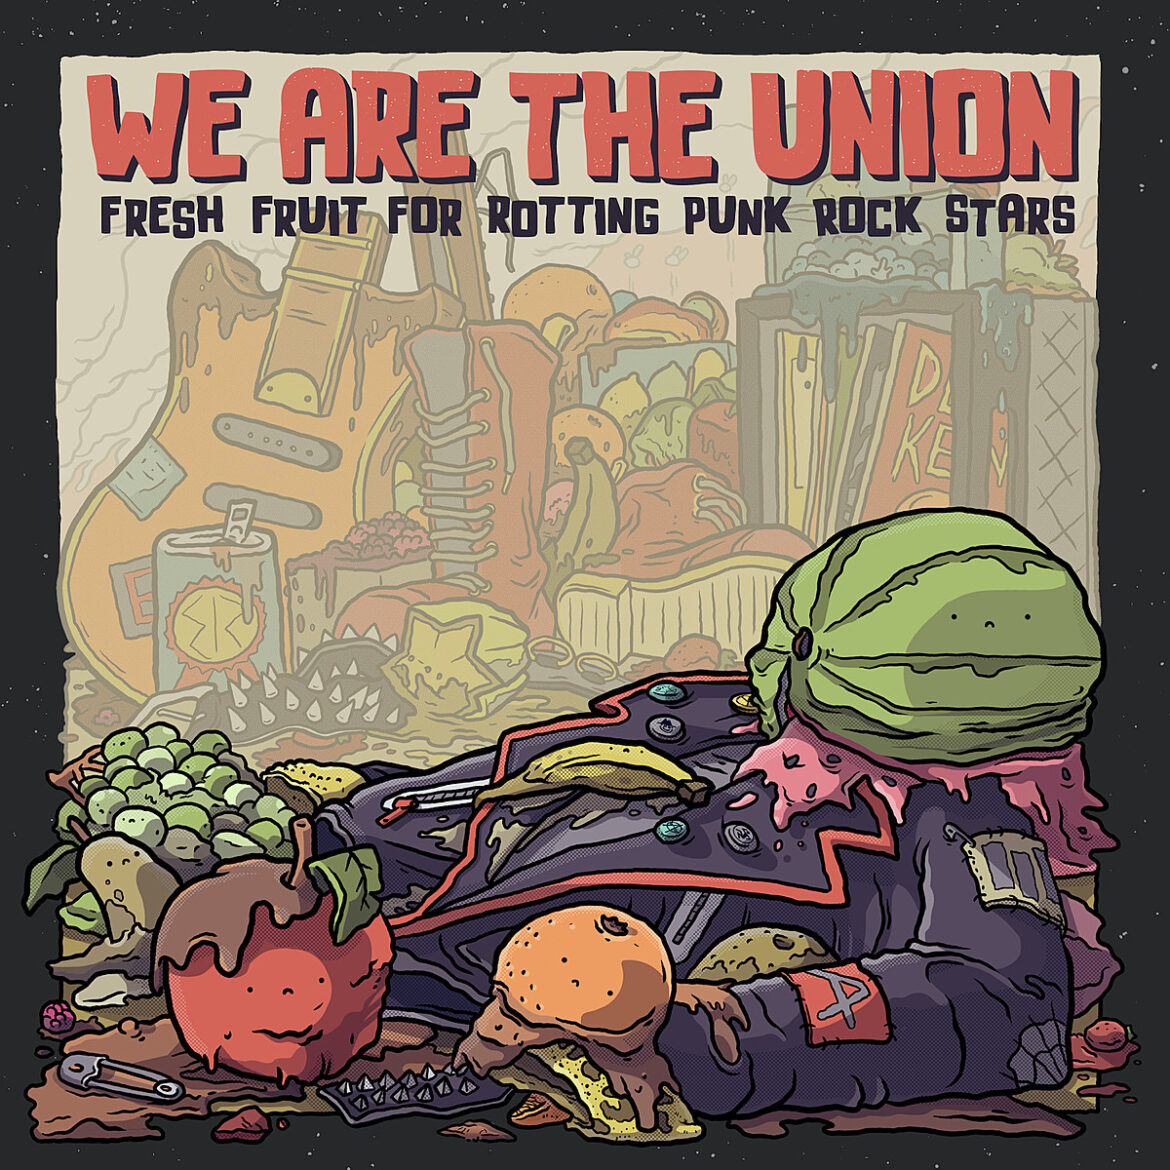 "We Are The Union's ""Fresh Fruit for Rotting Punk Rock Stars"" takes aim at aging, once-political punks"